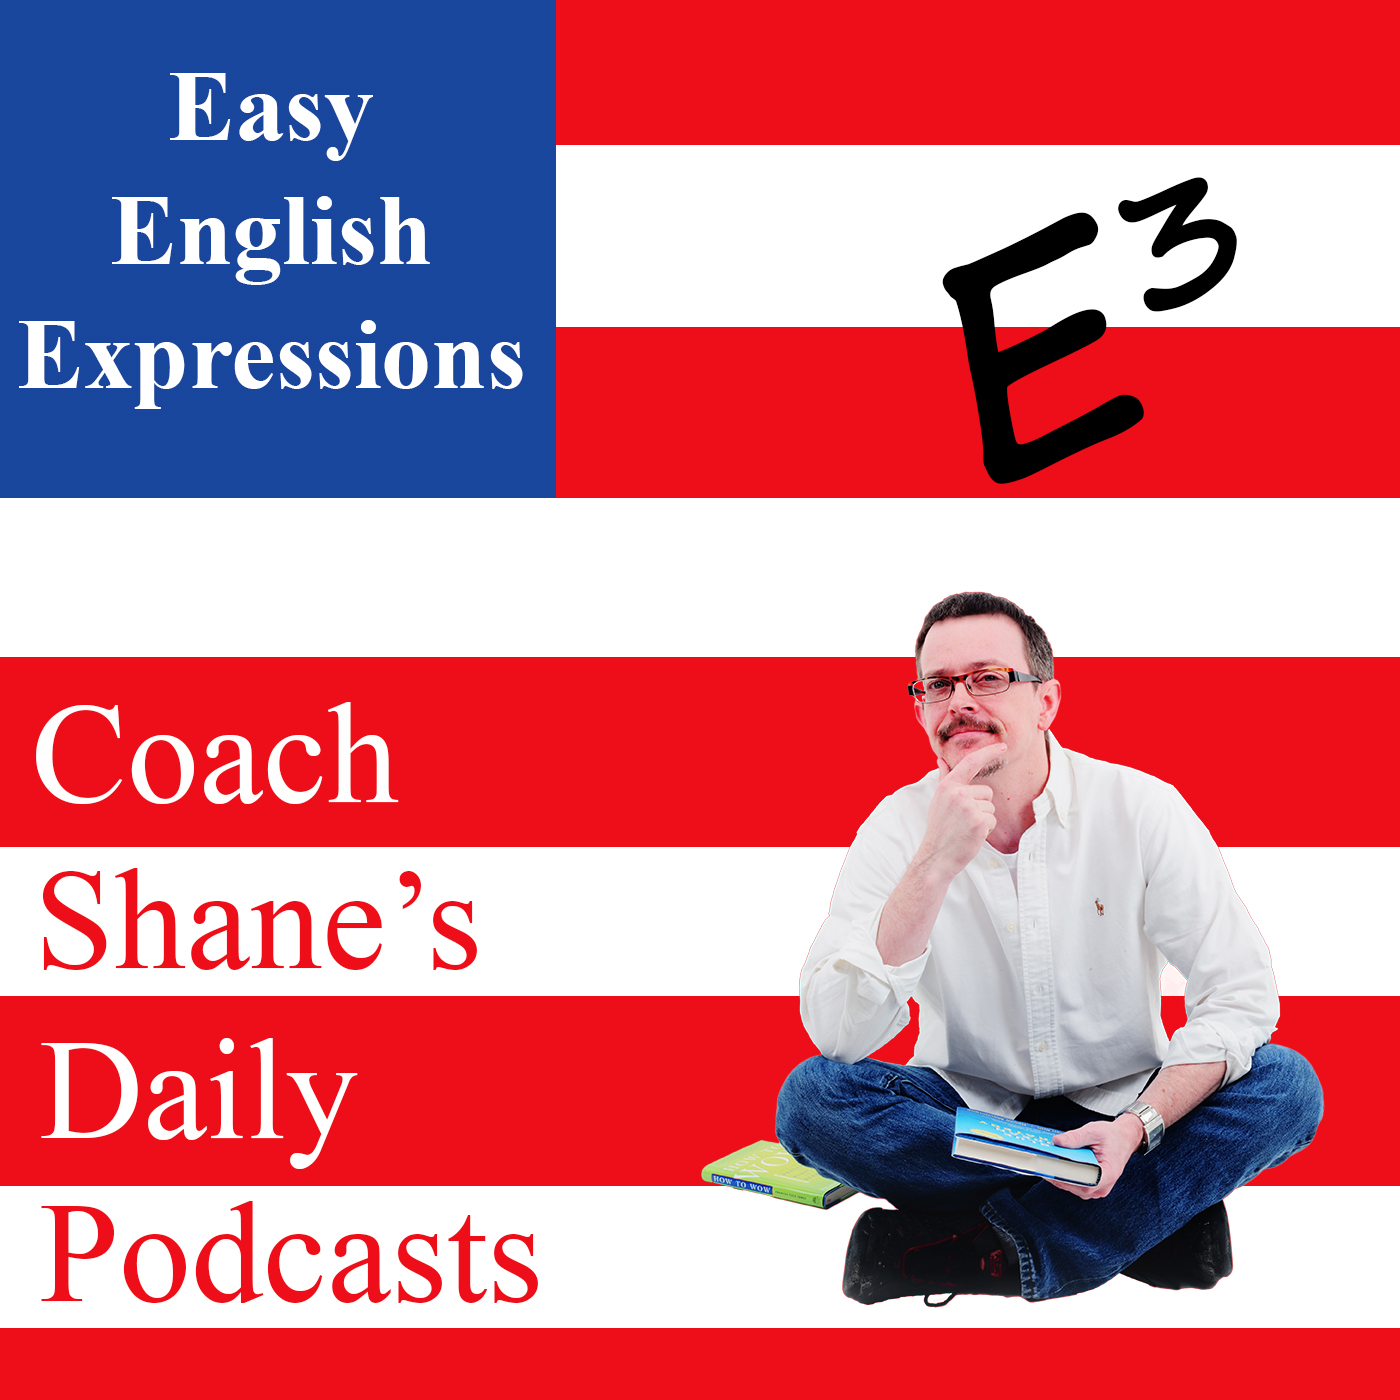 72 Daily Easy English Expression PODCAST—to KOWTOW